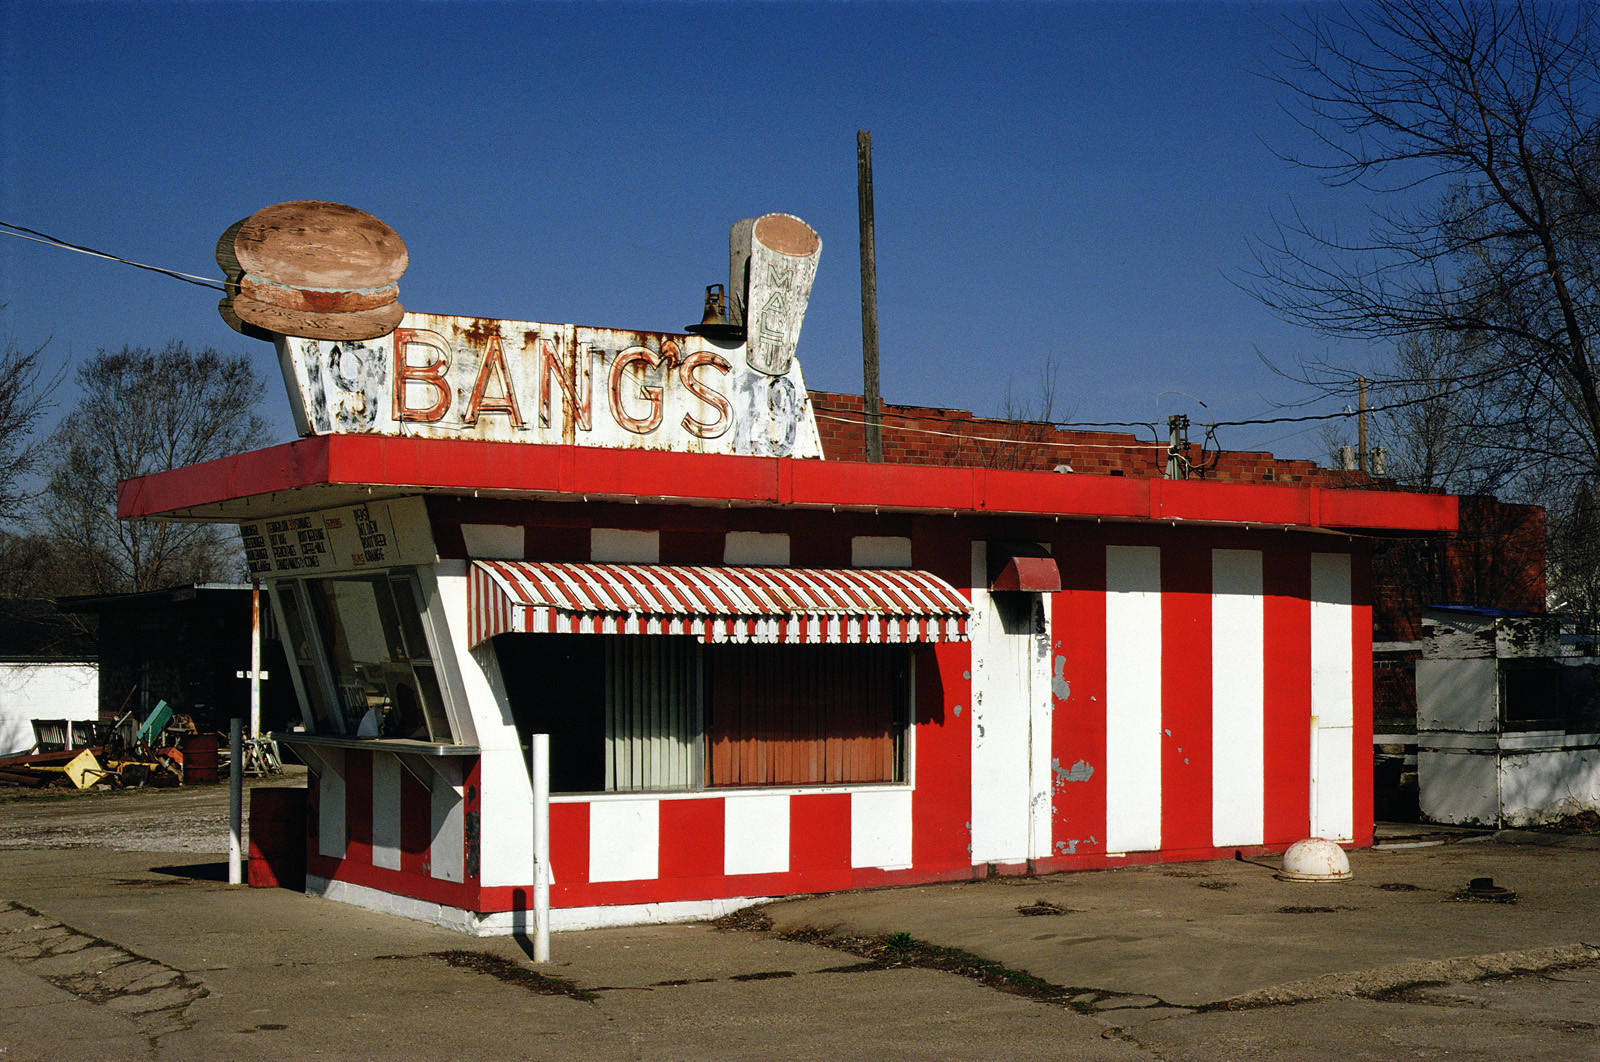 Bang's Drive-in Food Stand, Chariton, Iowa.